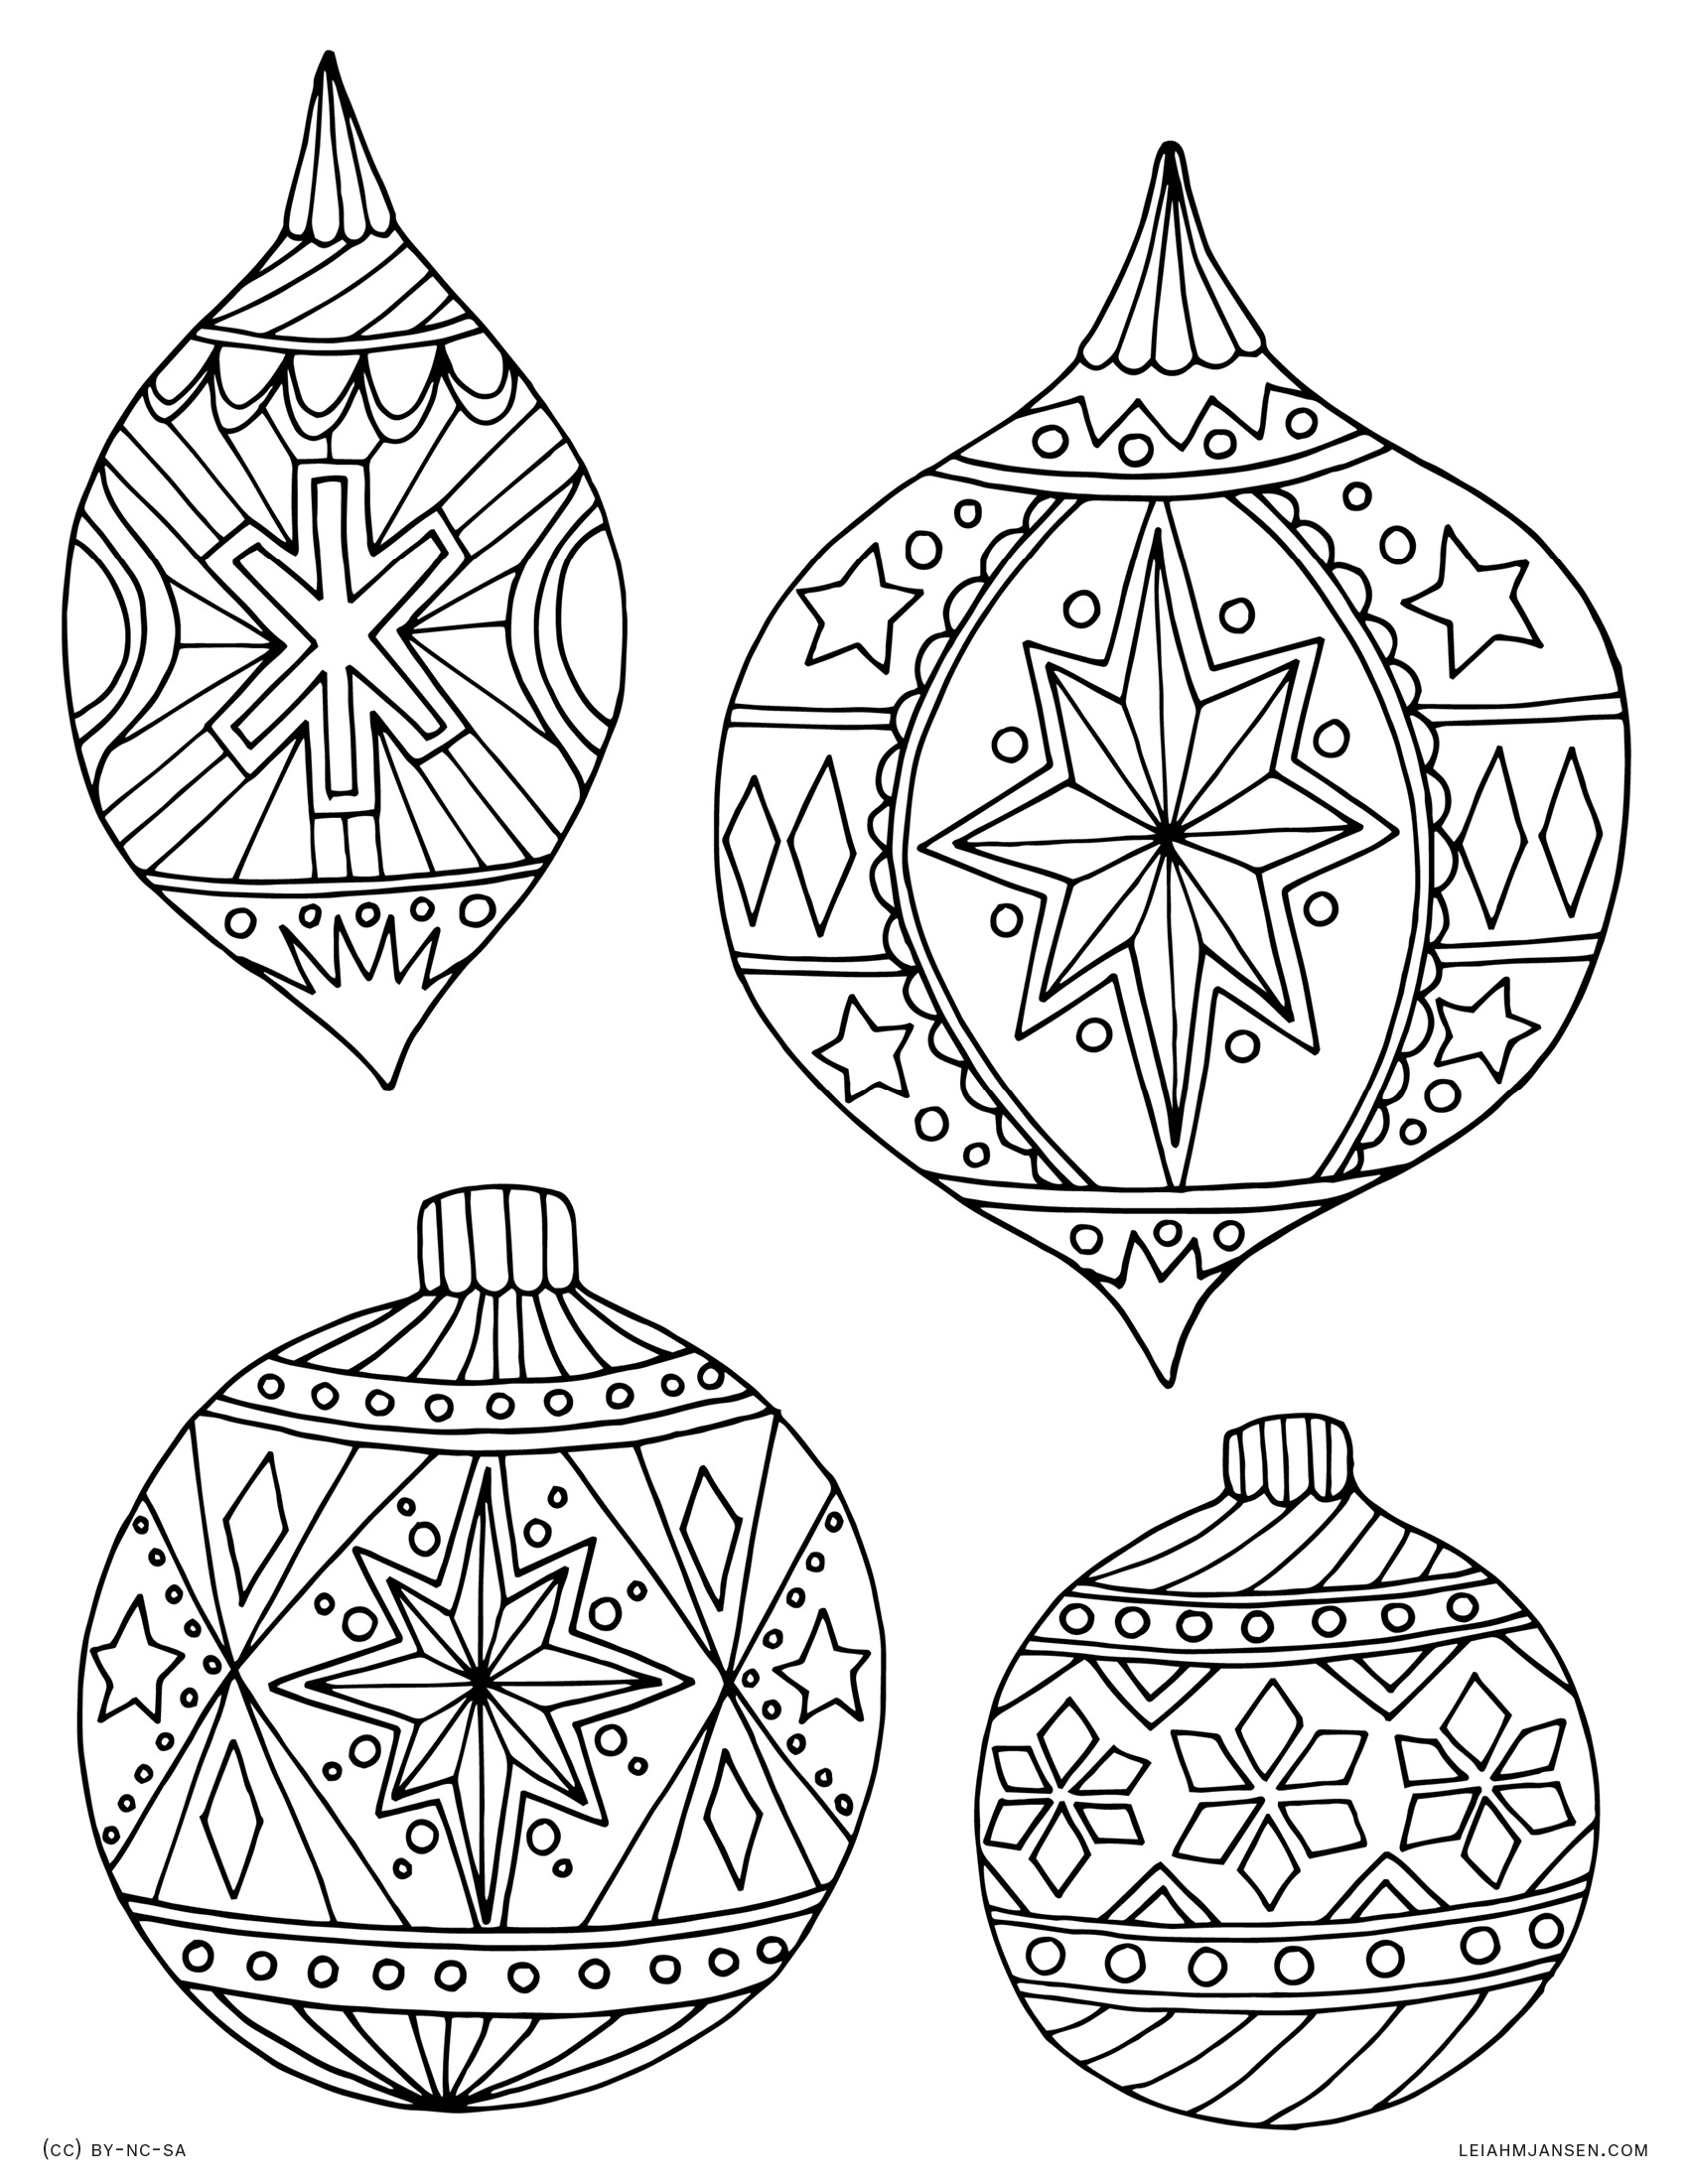 This is an image of Holiday Coloring Pages Printable Free with winter